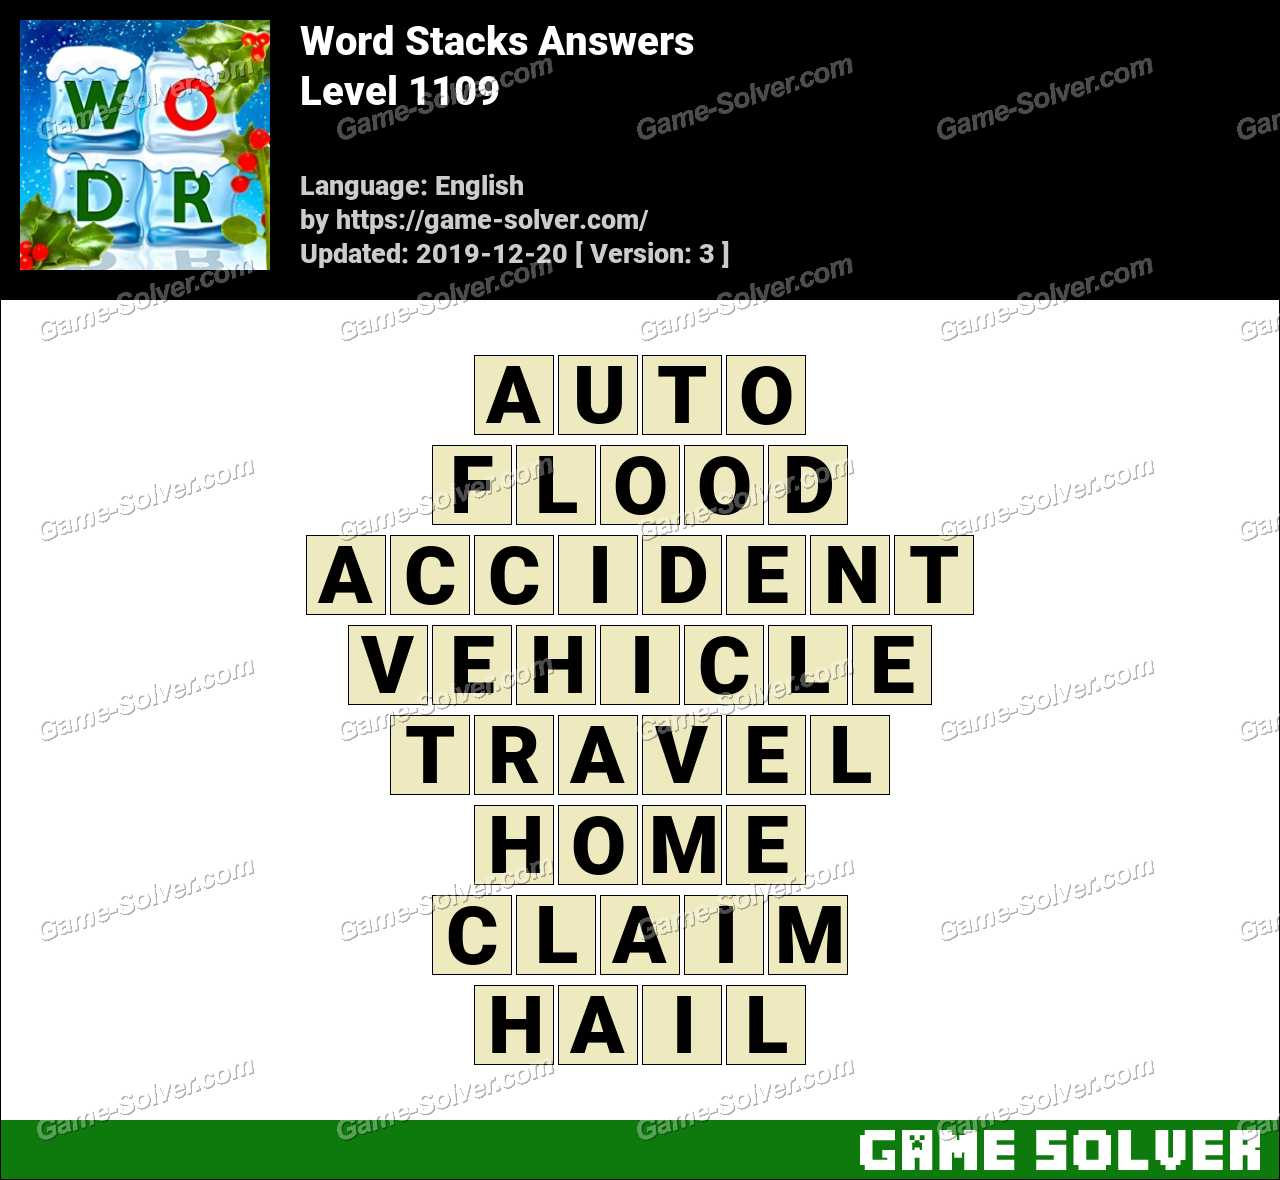 Word Stacks Level 1109 Answers